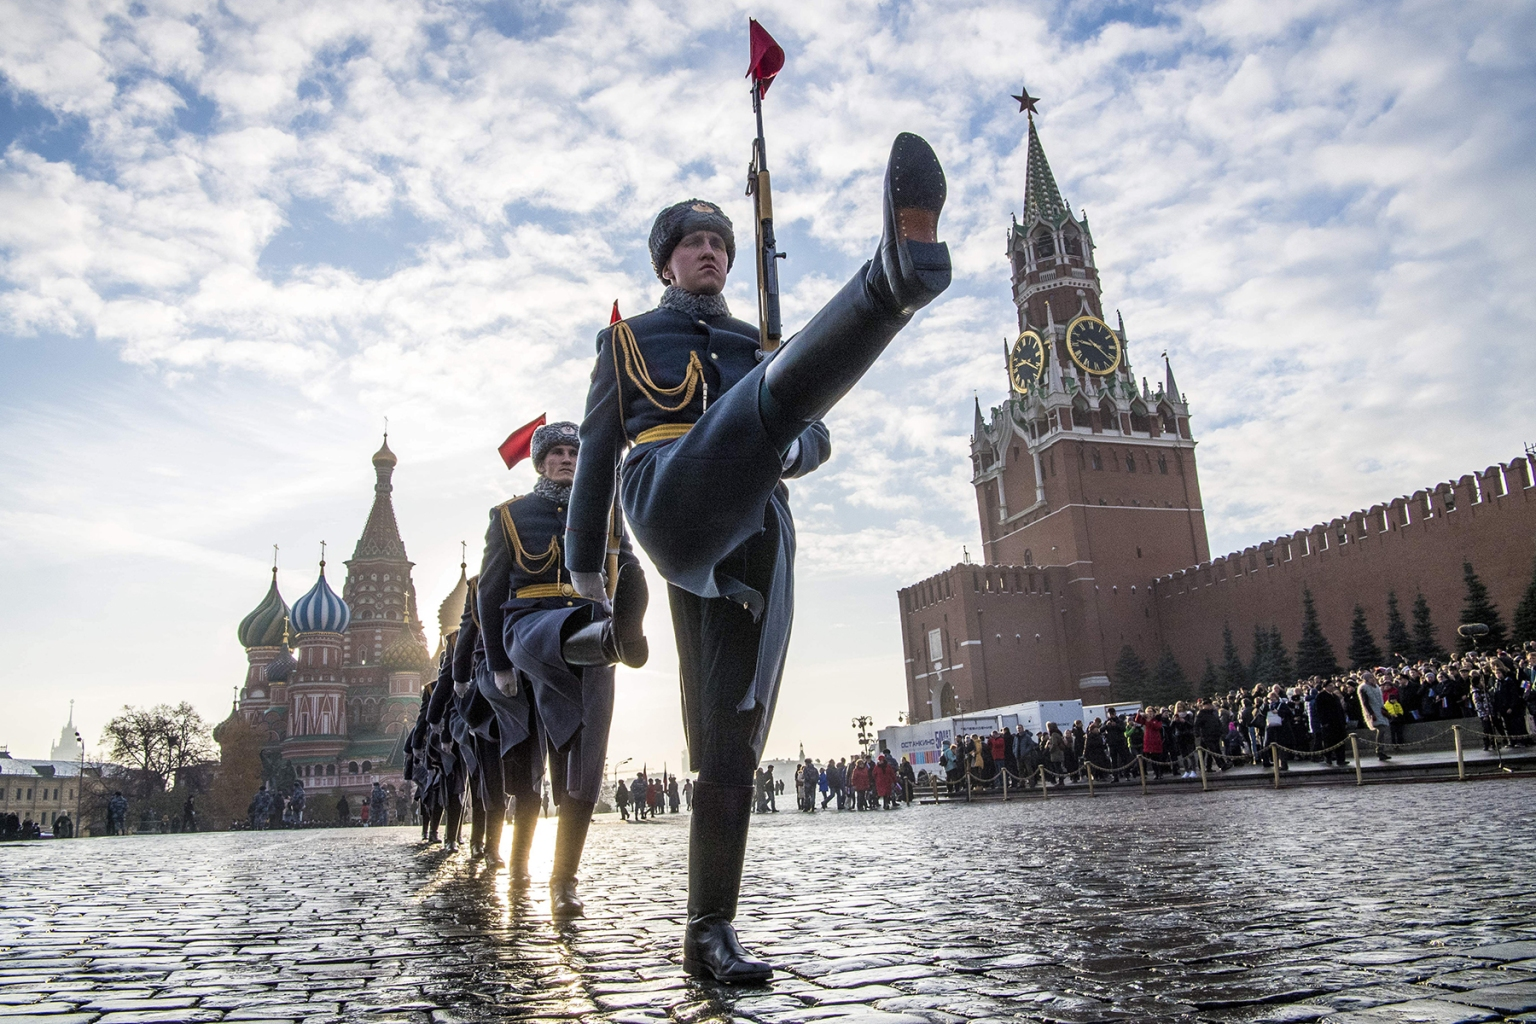 Russian honor guards march during a military parade at Red Square in Moscow on Nov. 7. Russia marked the 77th anniversary of the 1941 parade, when Red Army soldiers marched past the Kremlin walls toward the front line to fight Nazi Germany troops during World War II. MLADEN ANTONOV/AFP/Getty Images